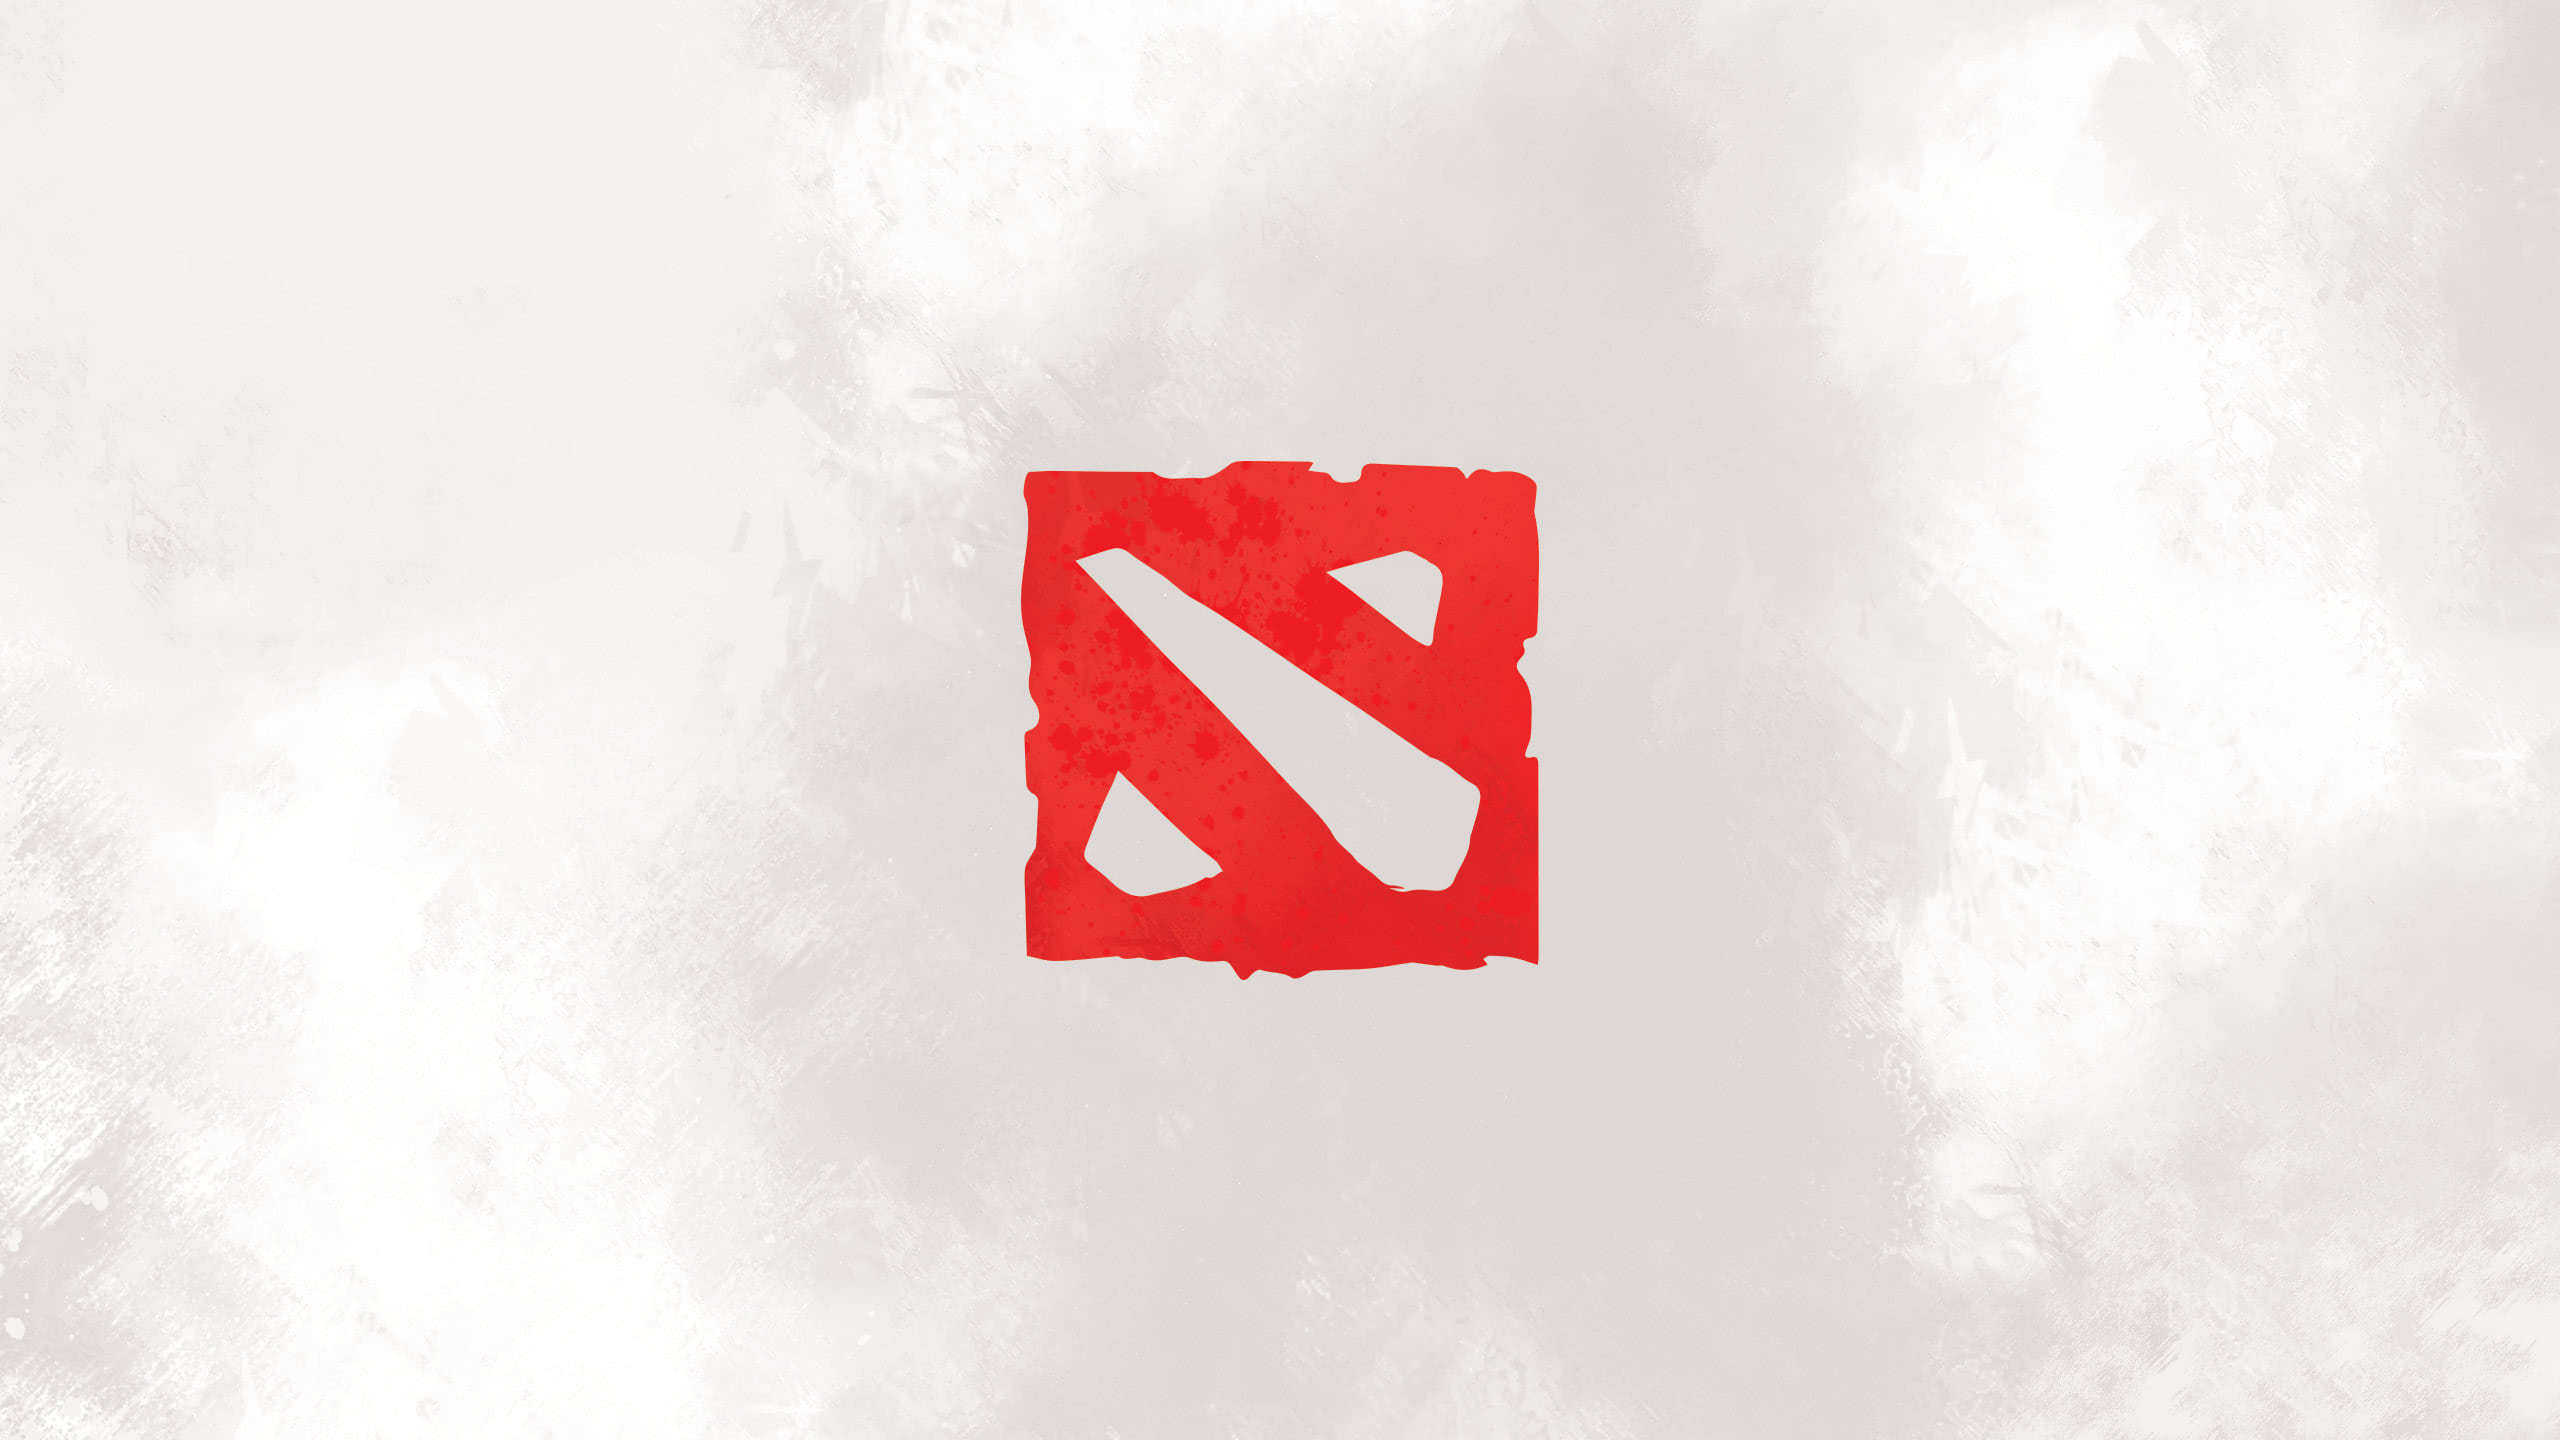 dota 2 logo 2 wqhd 1440p wallpaper